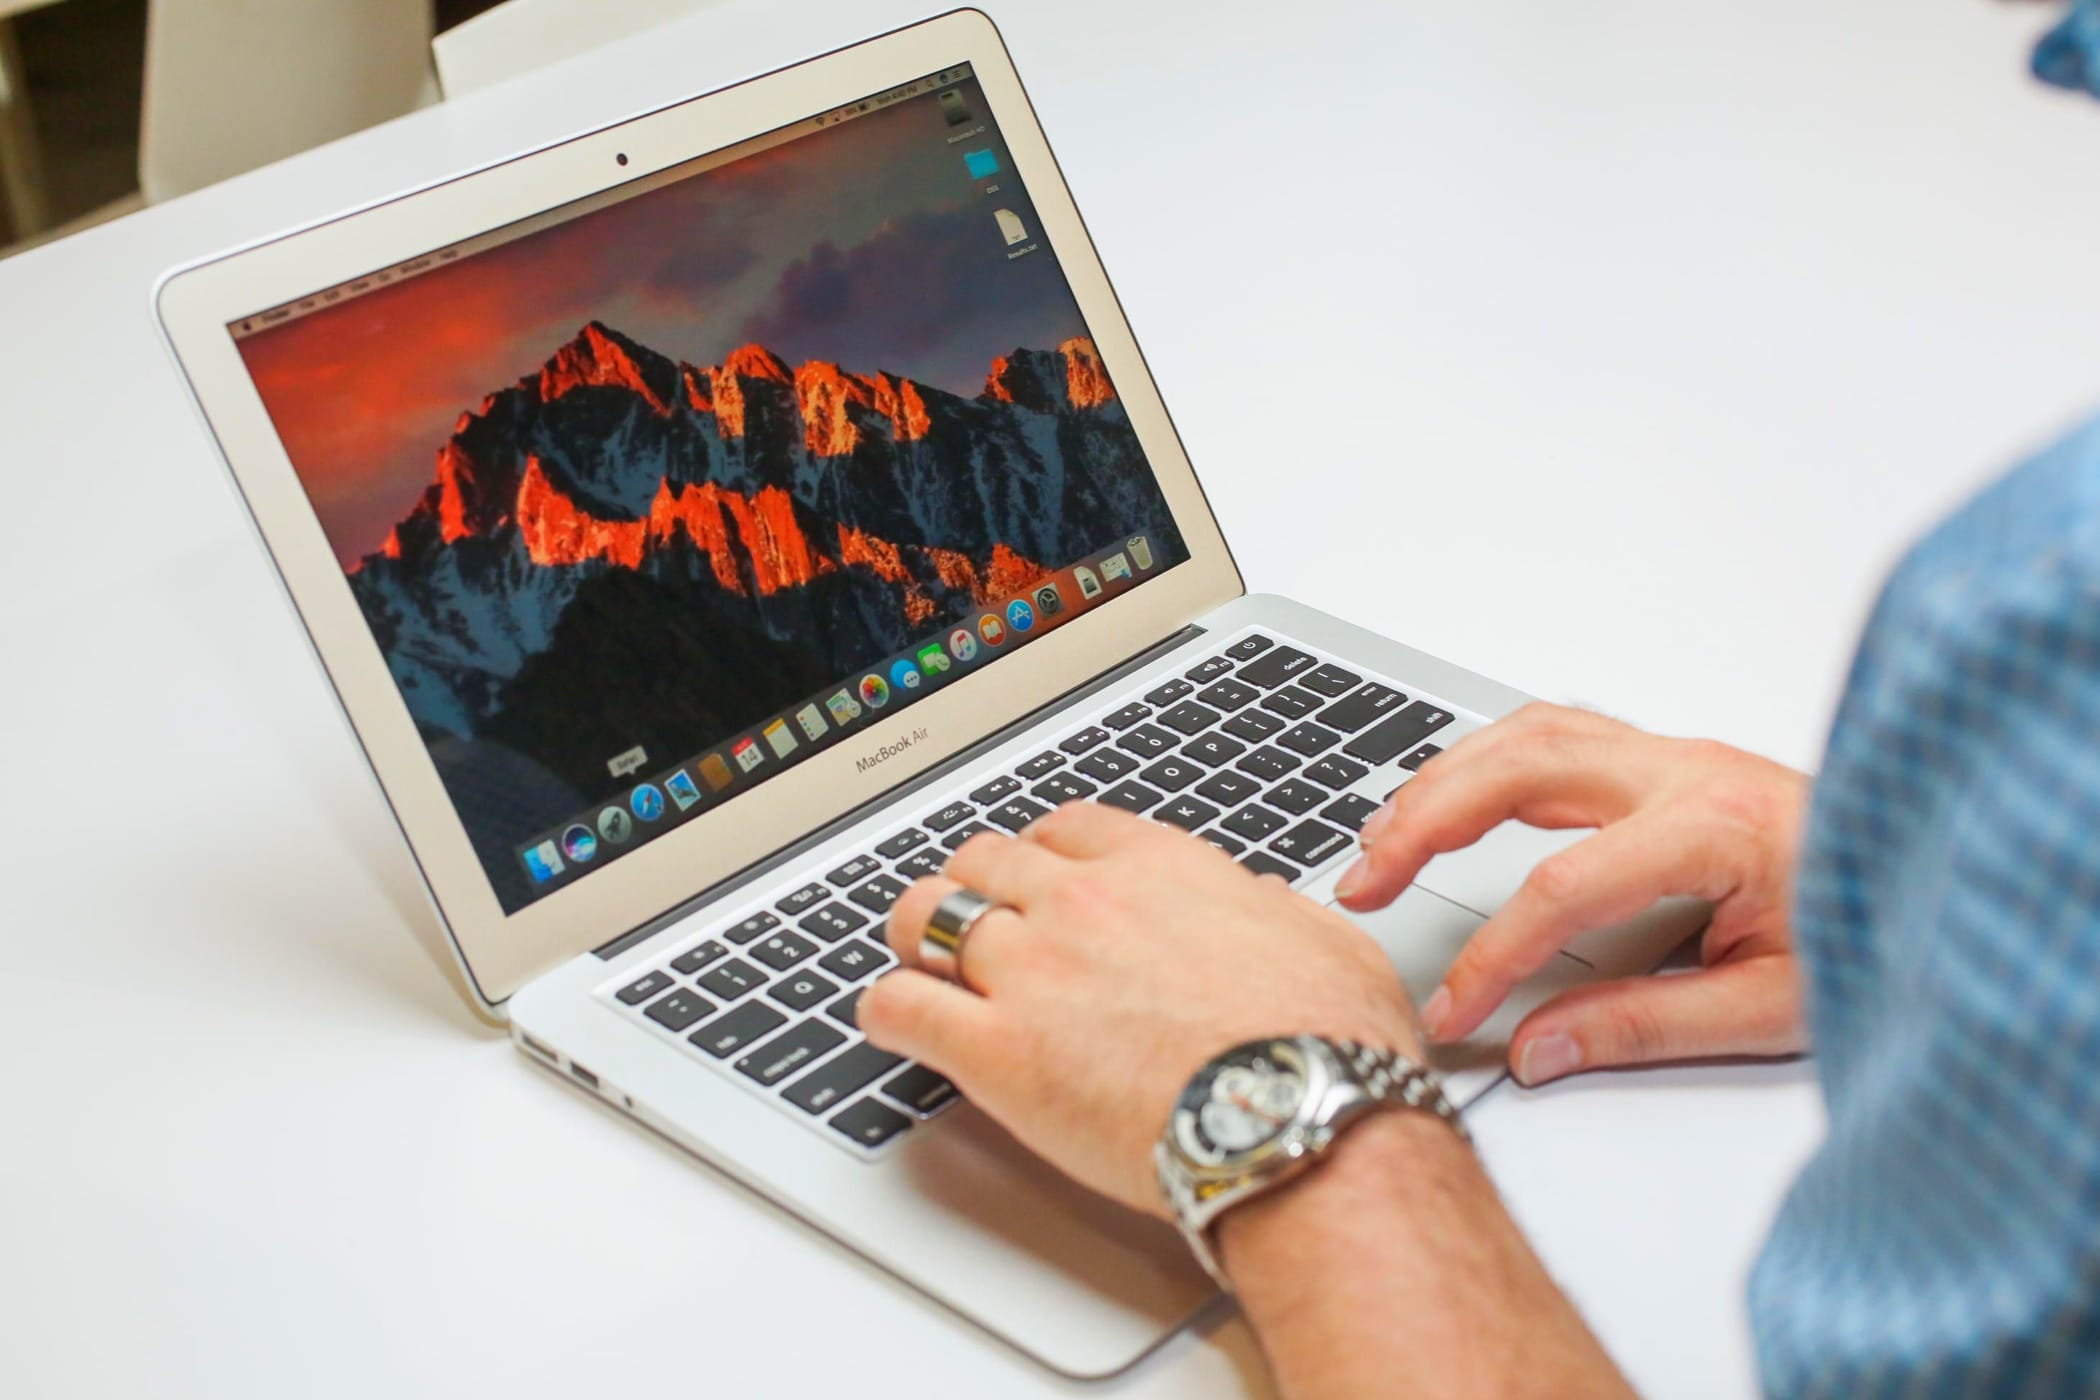 MacBook Air 2018 release date <em>air</em> MacBook Air 2018 release date